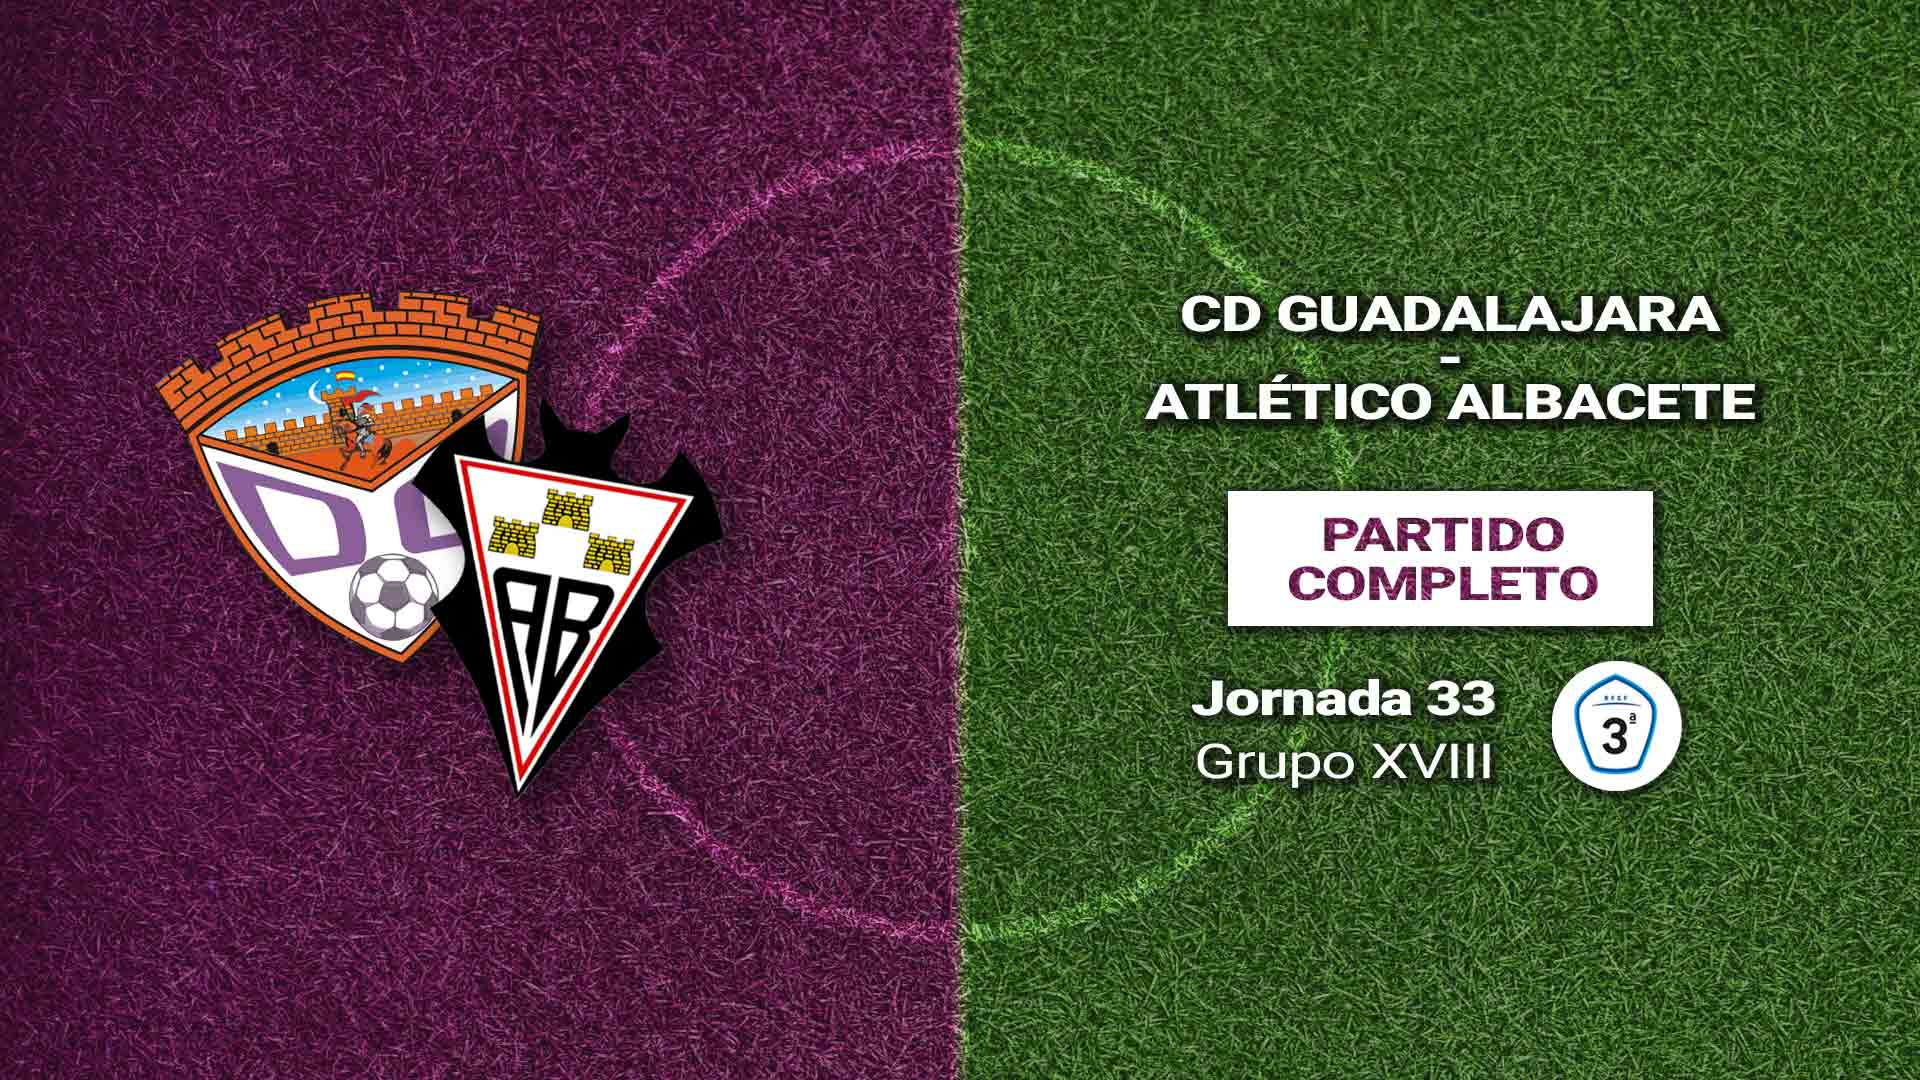 EN PLAY | 3ª DIVISIÓN | Completo: CD Guadalajara 0 - At. Albacete 4